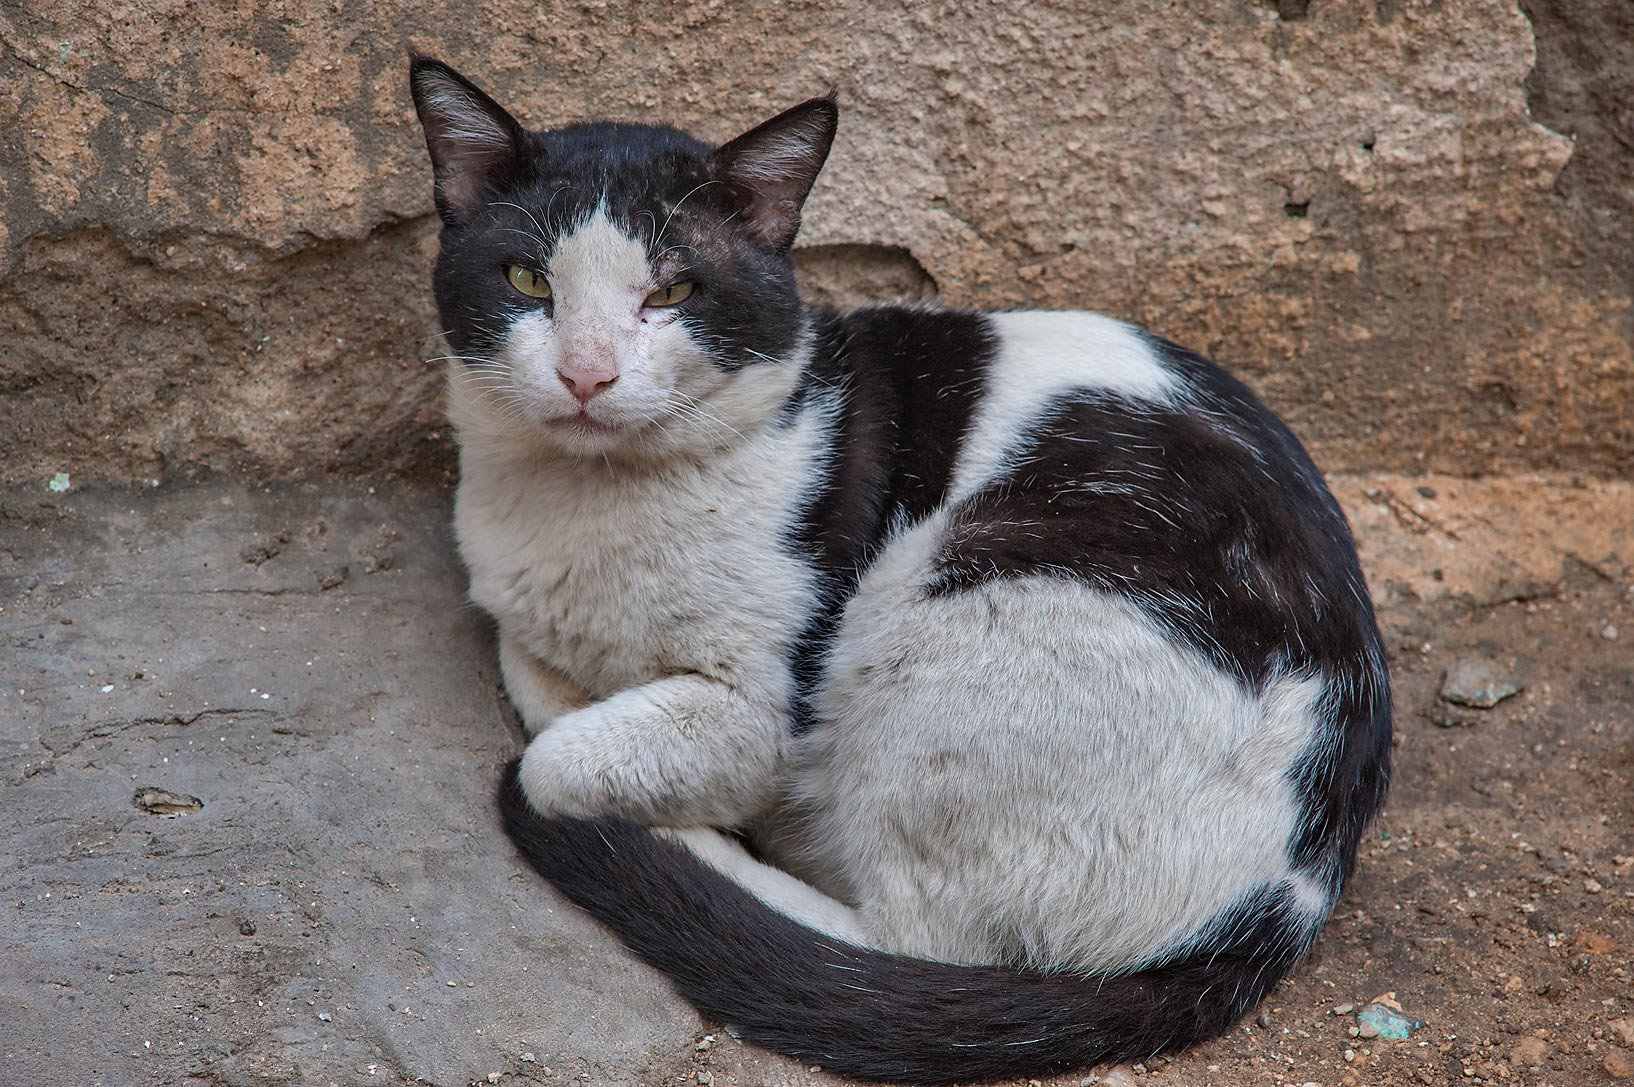 Resting black and white cat near Abdullah Bin Thani St. in Musheirib area. Doha, Qatar